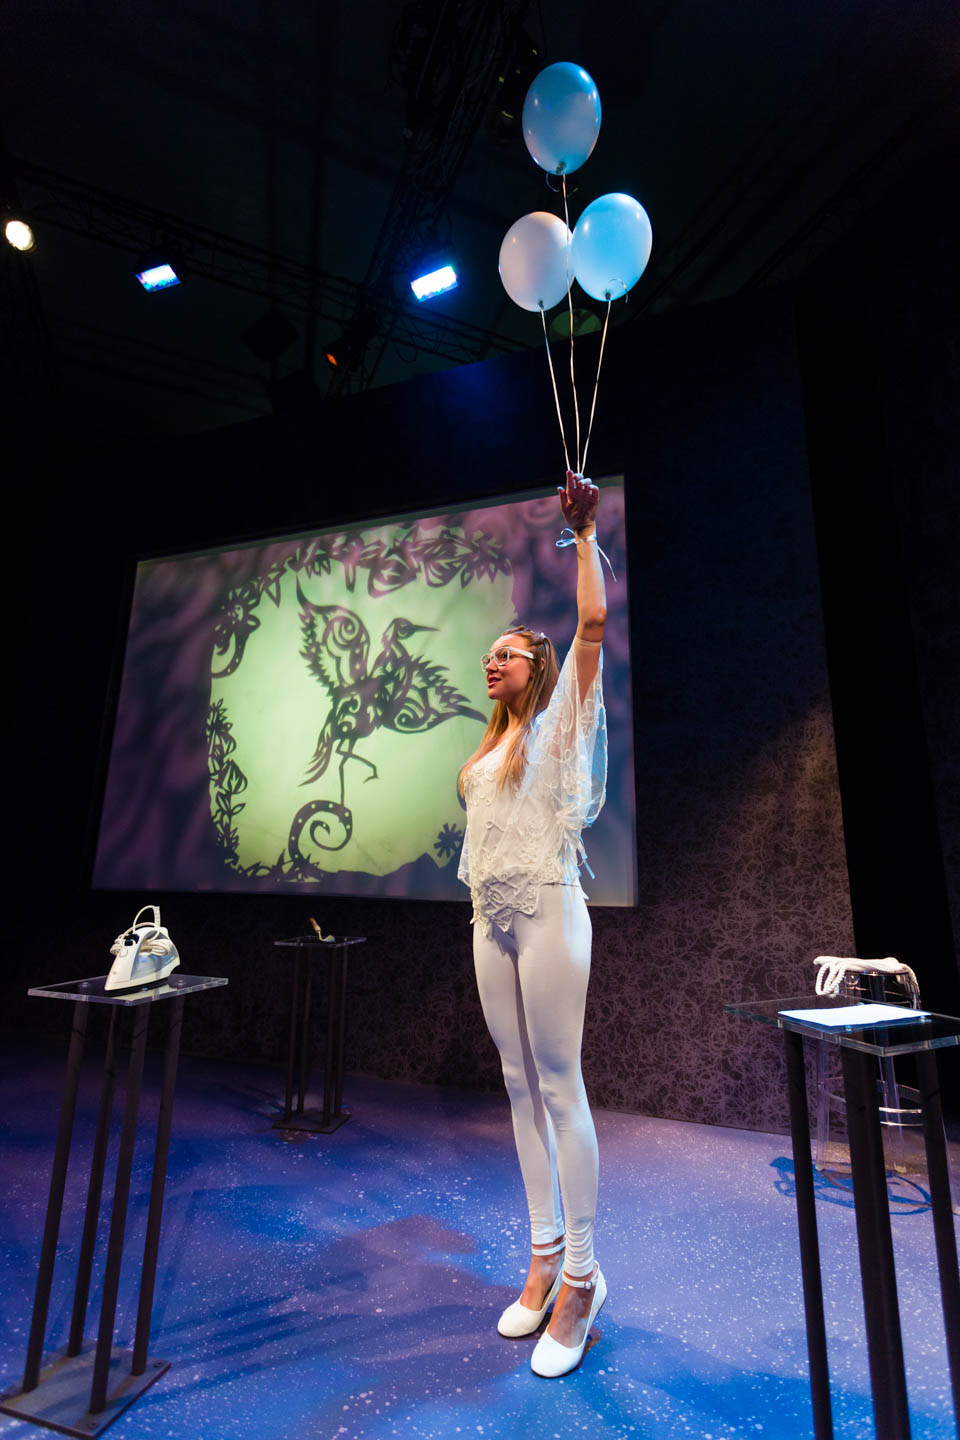 Blackberry Winter performed at the Salt Lake Acting Company